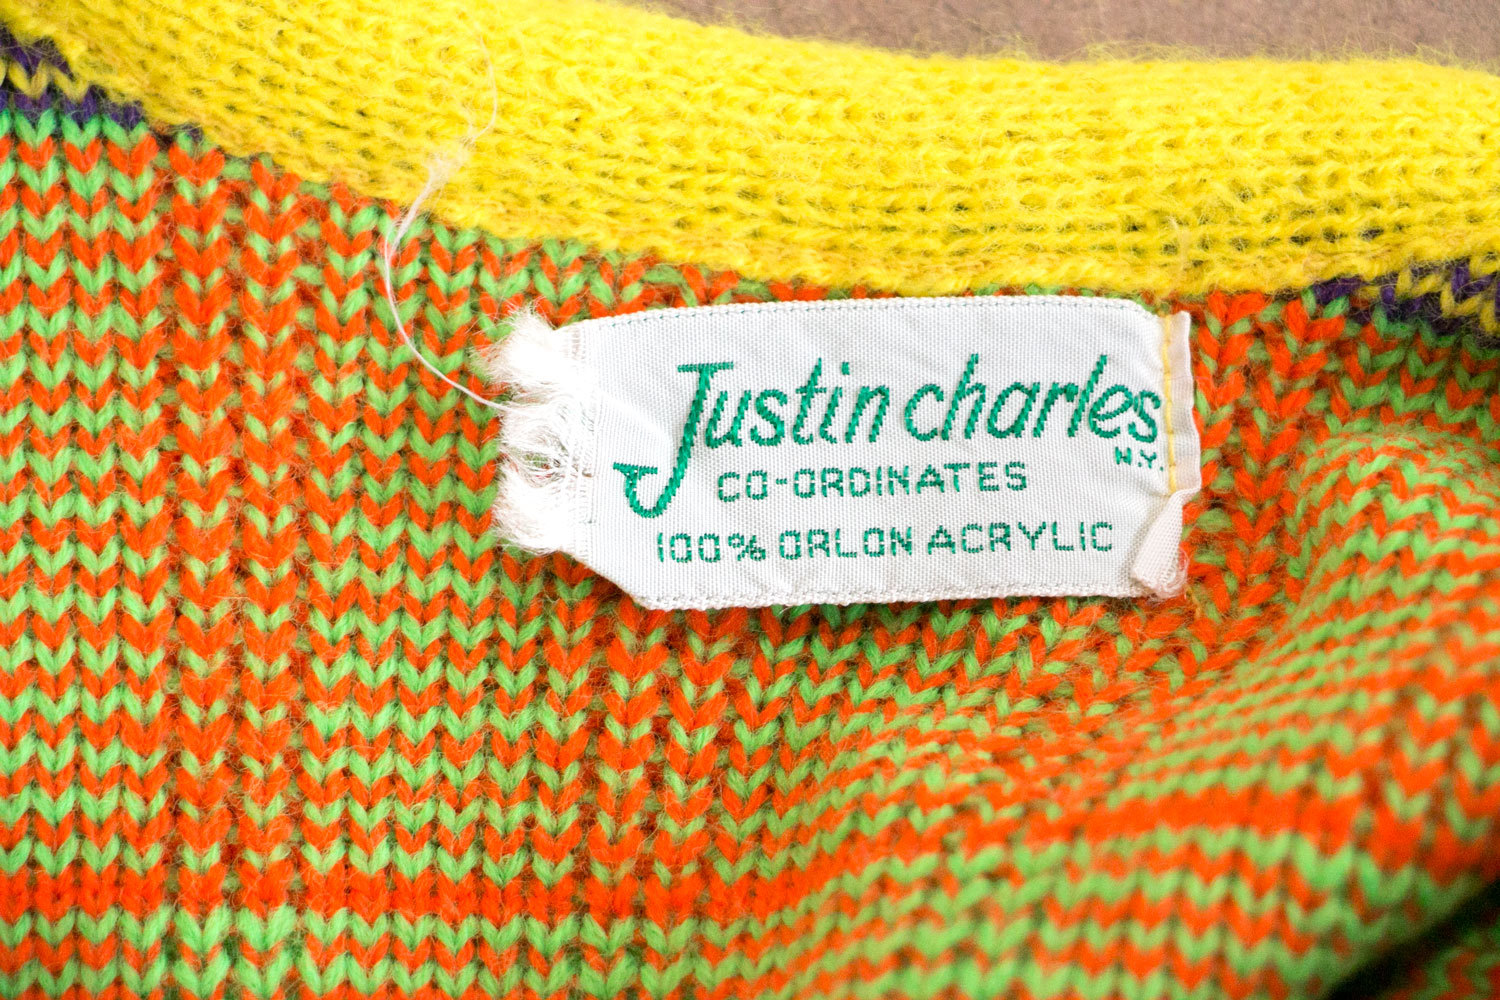 Rare Vintage Neon 1960's - 1970's Knit Tank Top / Vest, Justin Charles // Neon Rainbow Colors! //Indie // Hipster // High Fashion // Gay